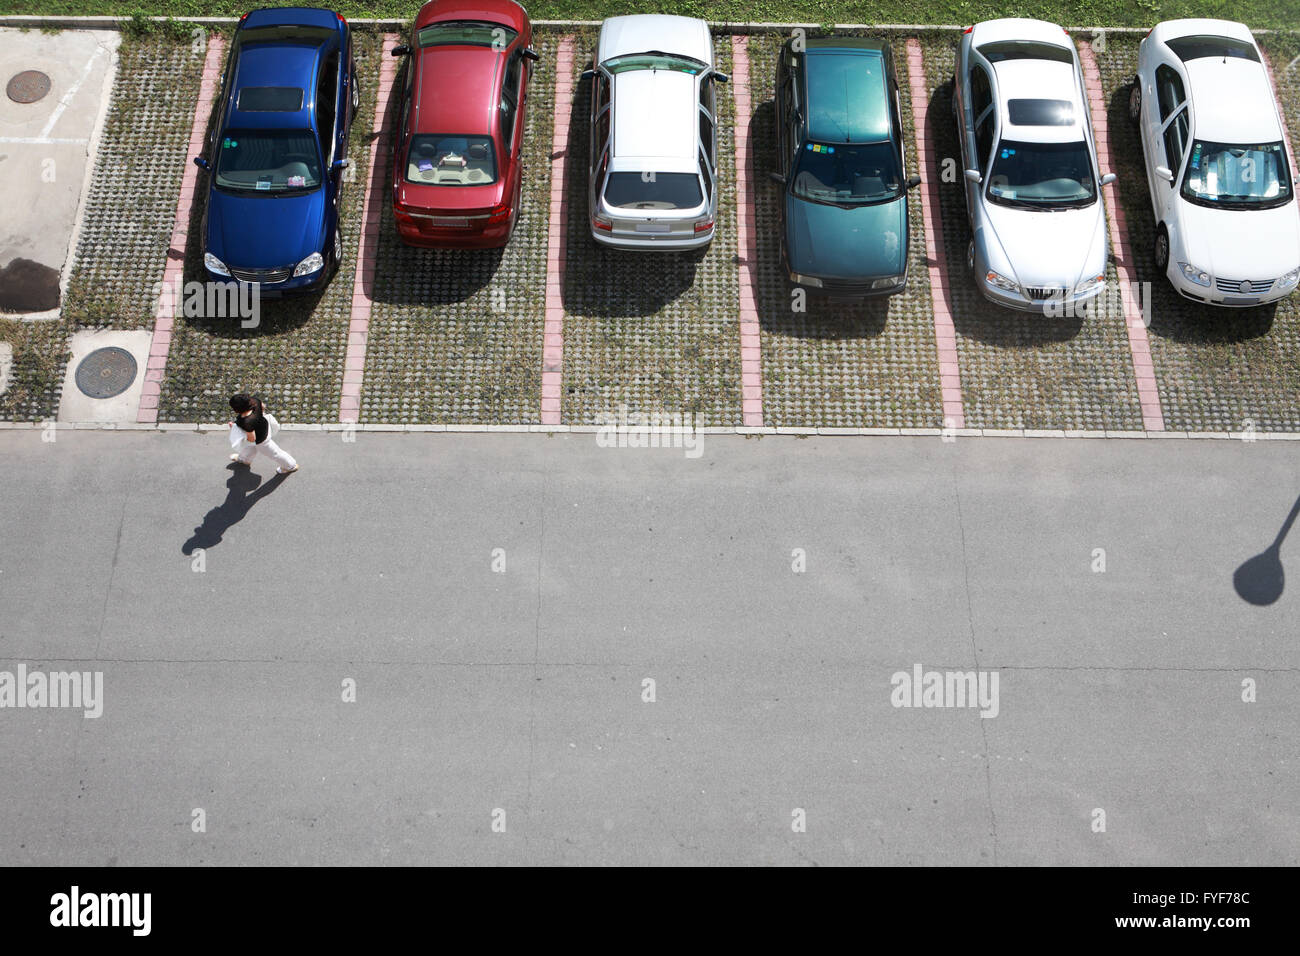 parking of small model cars - Stock Image